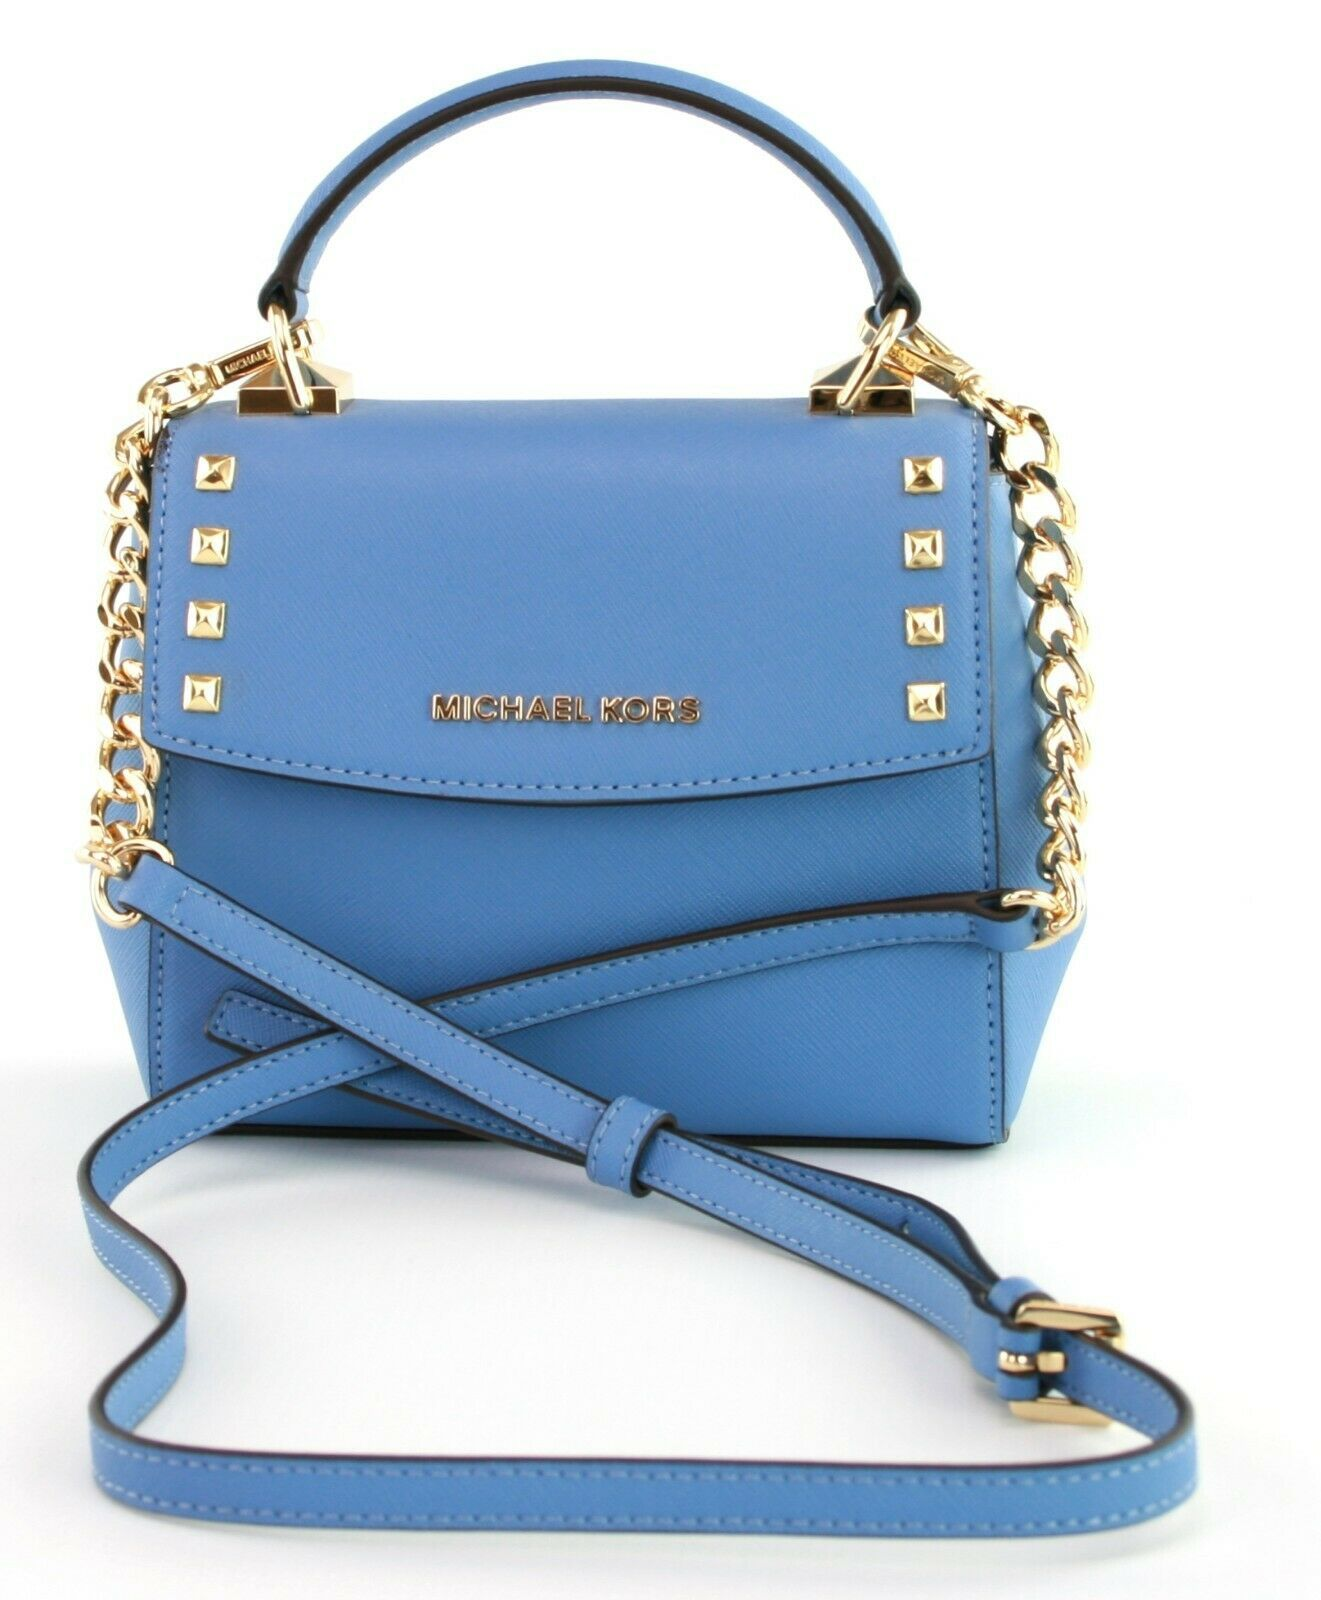 Michael Kors Cross Body Bag Karla Leather Small Handbag French Blue RRP £200 image 1